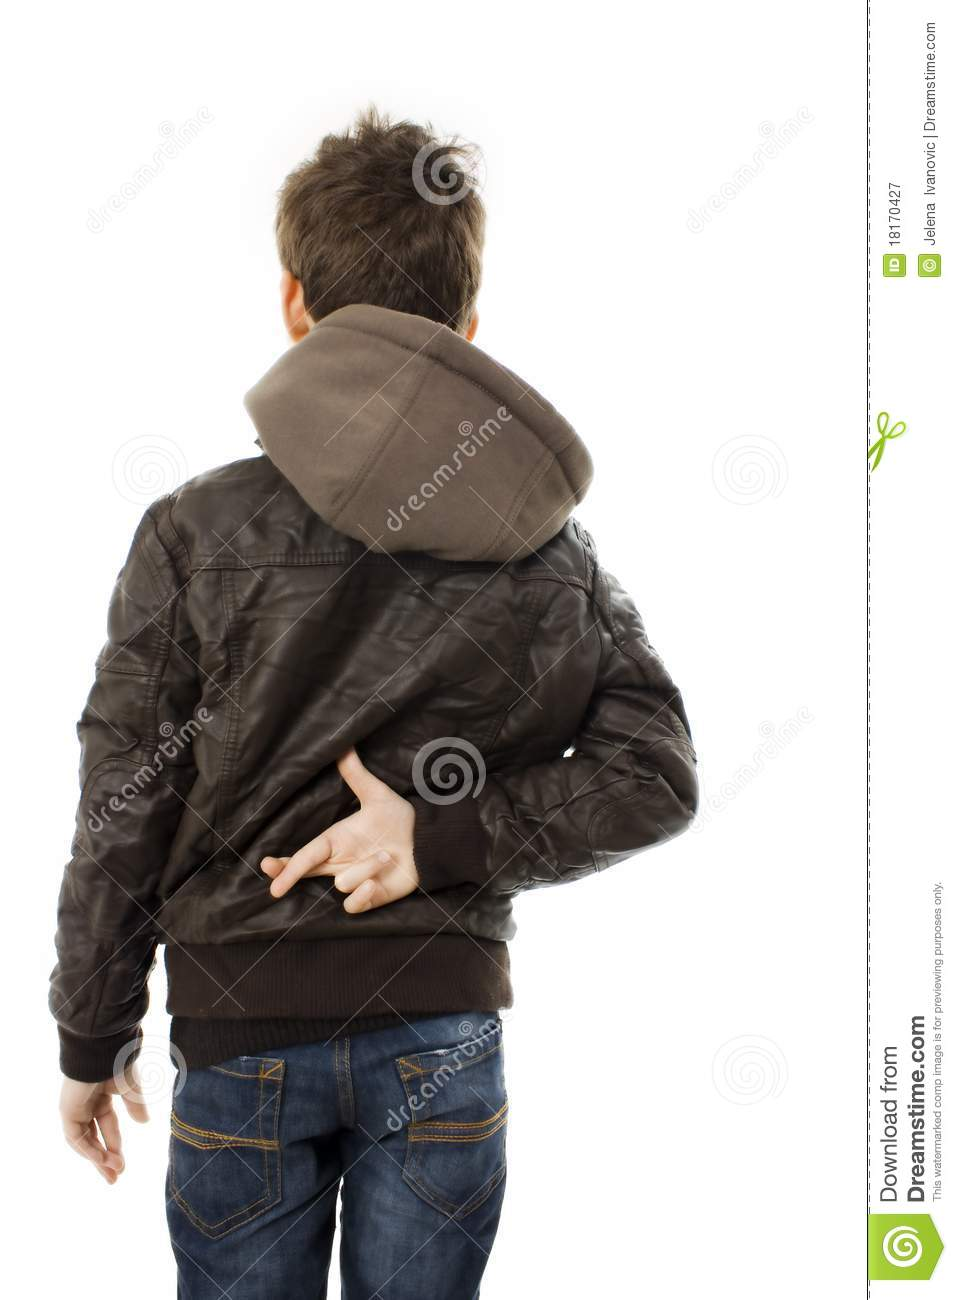 Boy Crossing Fingers Behind Back Royalty Free Stock